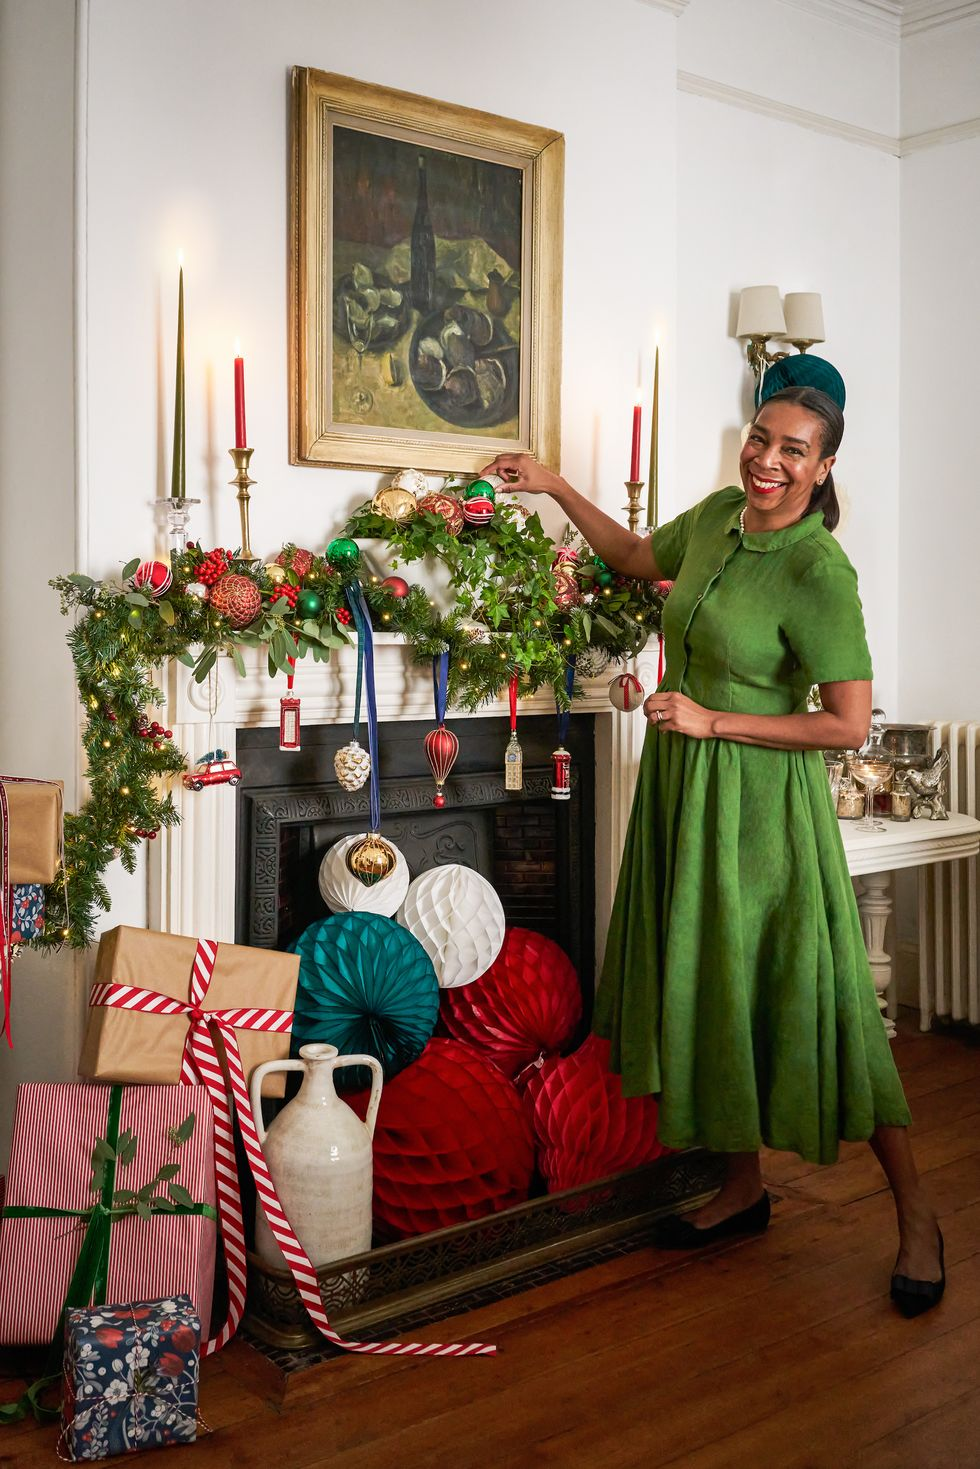 Paula Sutton of @HillHouseVintage unveils cottagecore-inspired Christmas home makeover